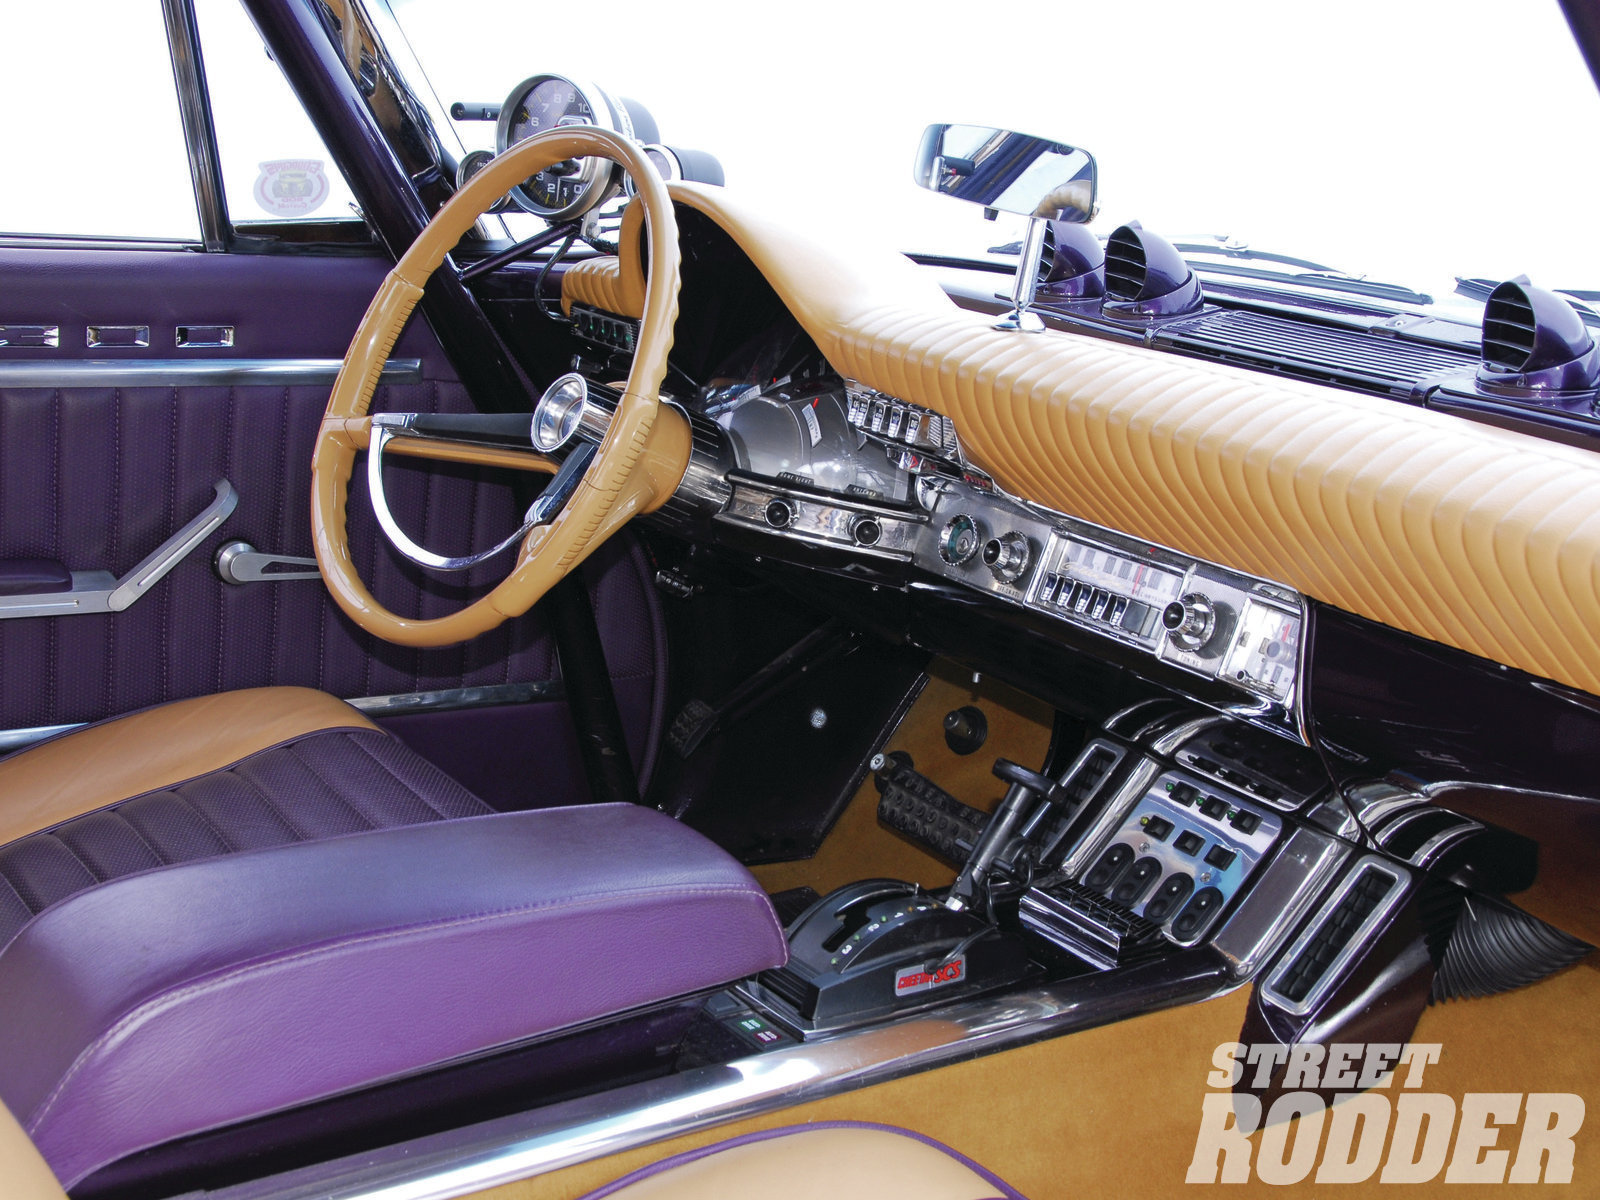 The stock dash was retained and the original gauges were restored as was the factory steering wheel. Vintage Air keeps it cool while AccuAir sets the level and a Cheetah SCS shifter makes for fast getaways.